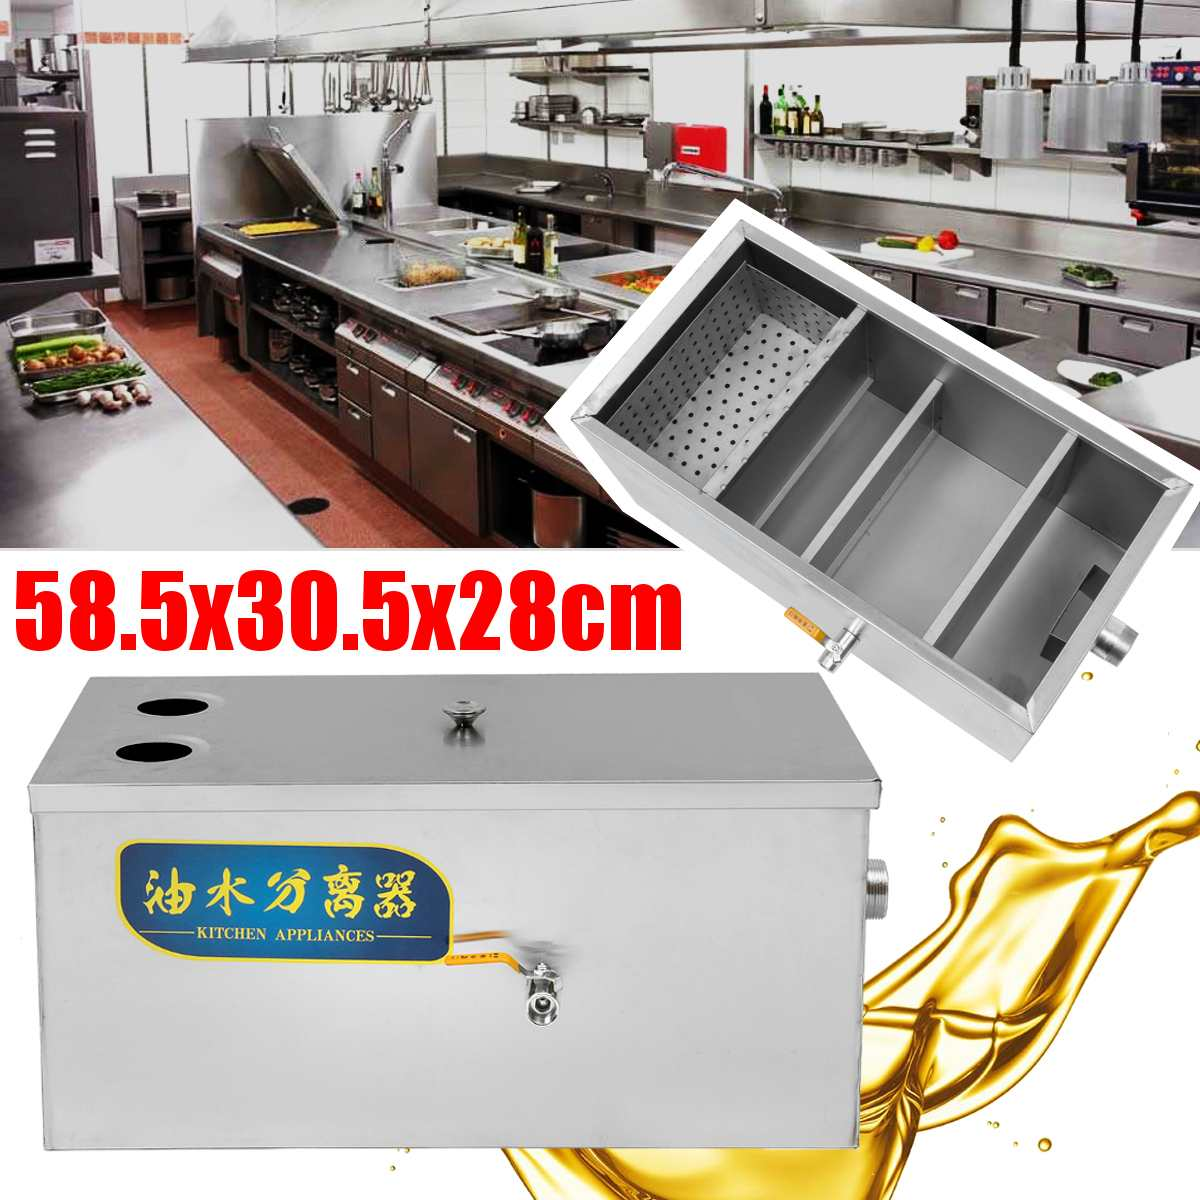 5000ML Large Stainless Steel Grease Trap Interceptor Set For Restaurant Kitchen Wastewater Detachable Design Removable Baffles5000ML Large Stainless Steel Grease Trap Interceptor Set For Restaurant Kitchen Wastewater Detachable Design Removable Baffles